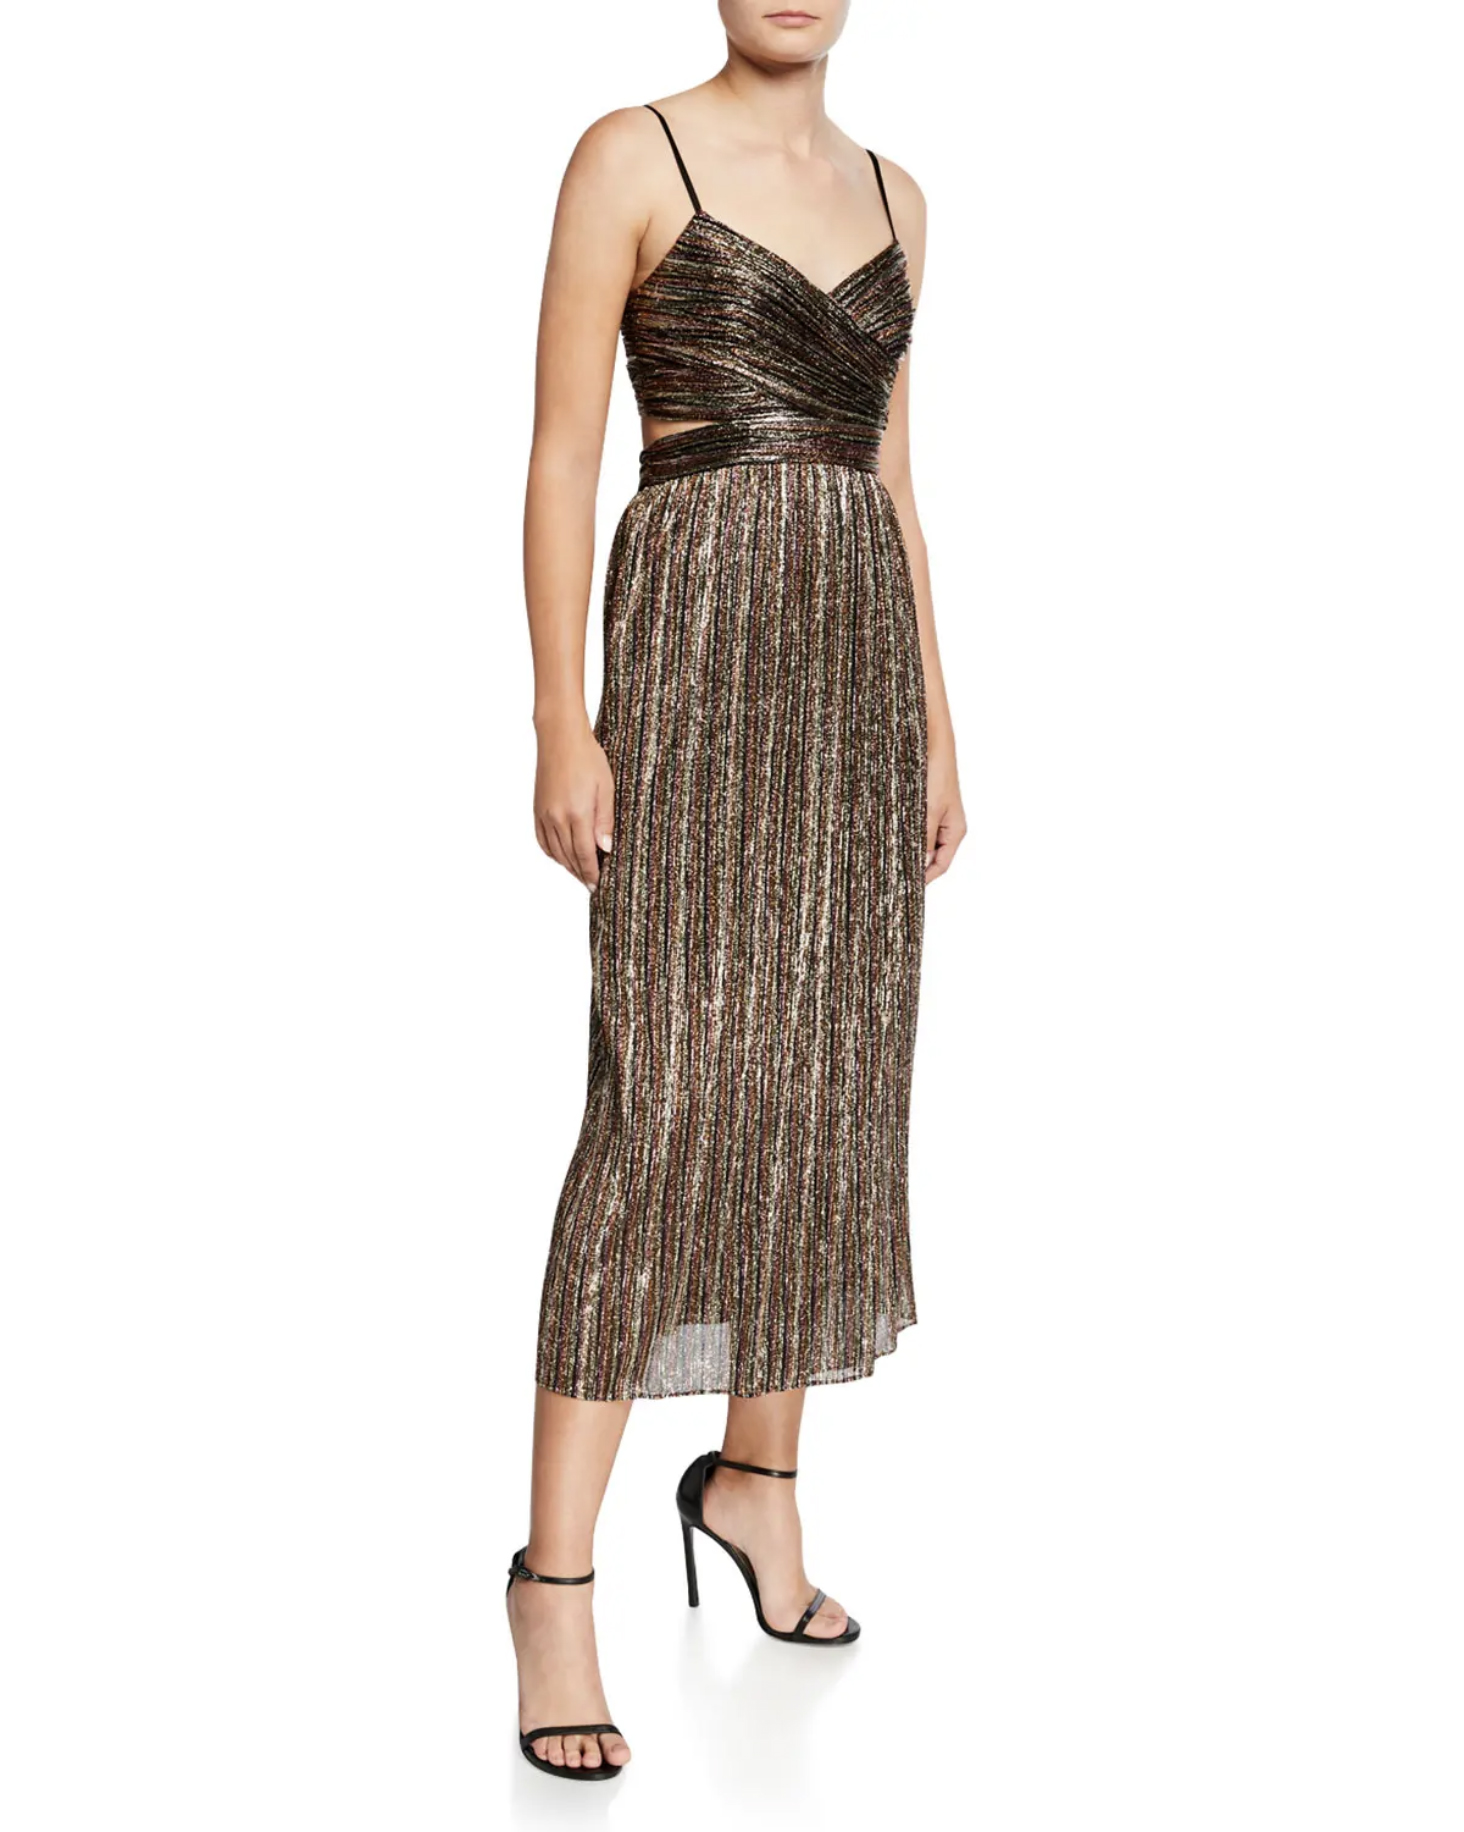 Aidan by Aidan Mattox Pleated Metallic Stripe Sleeveless Midi Cocktail Dress